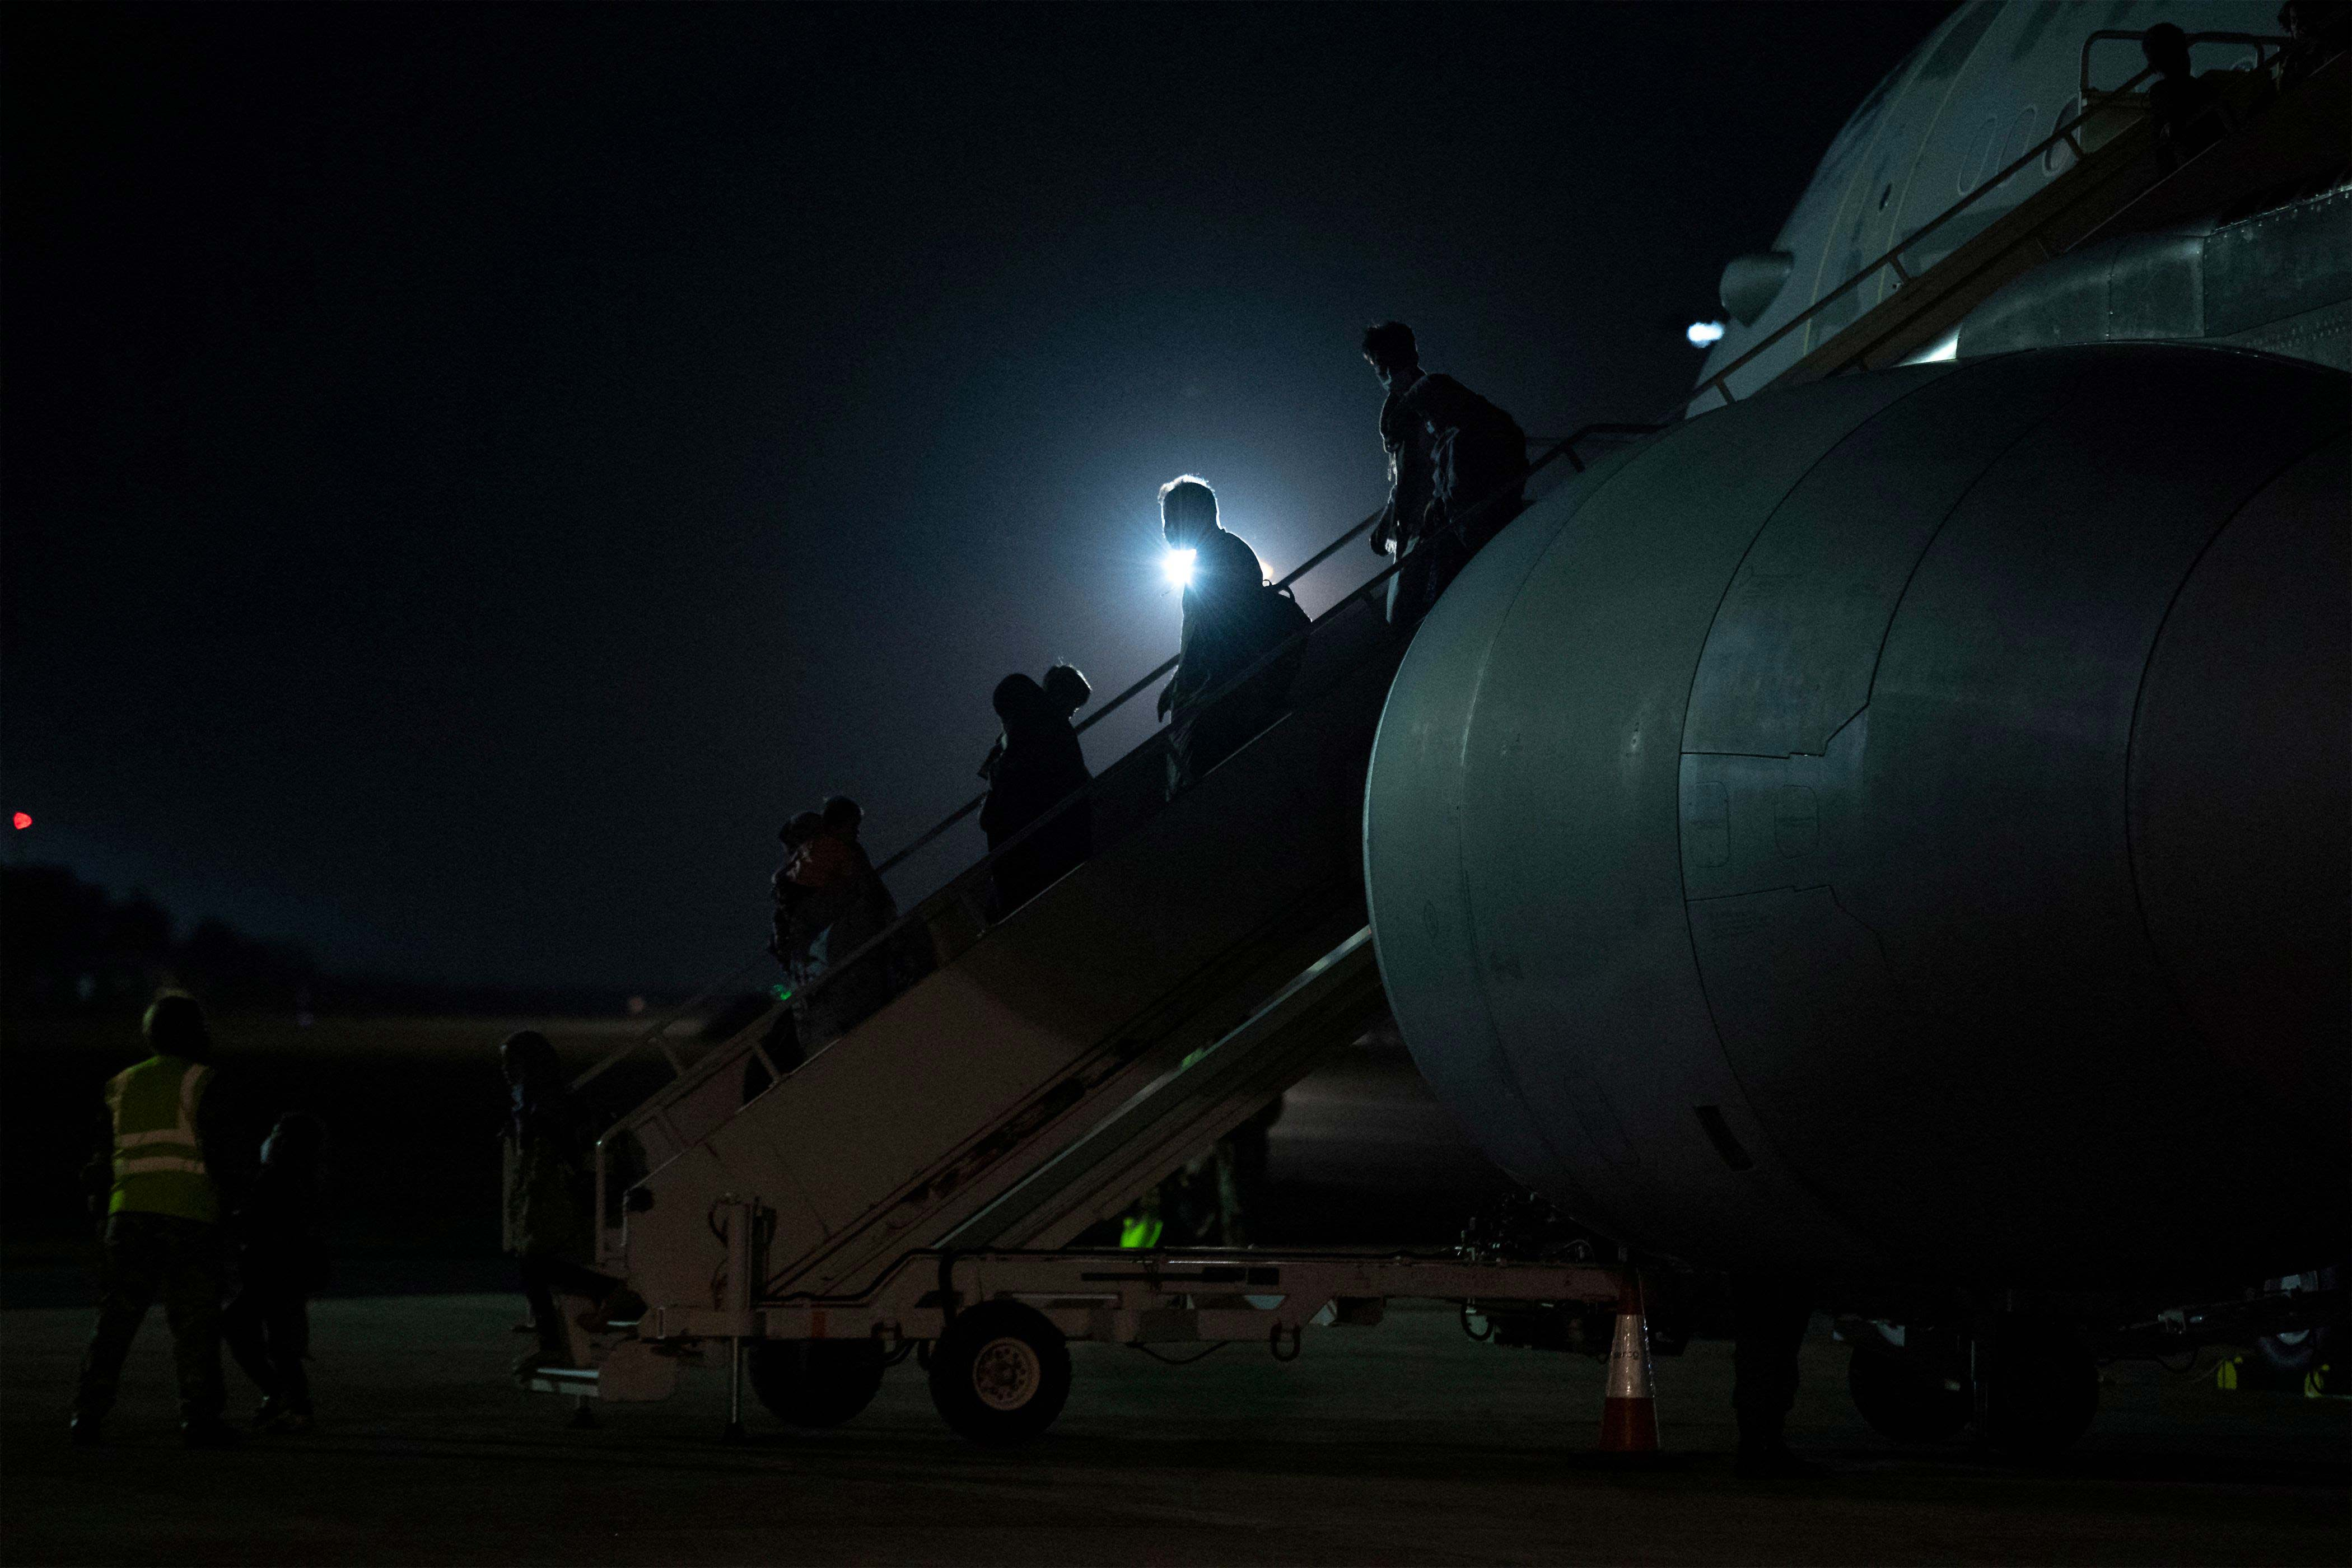 Passengers evacuated from Afghanistan disembark from a British Royal Air Force aircraft after landing at RAF Brize Norton station in England on August 24.